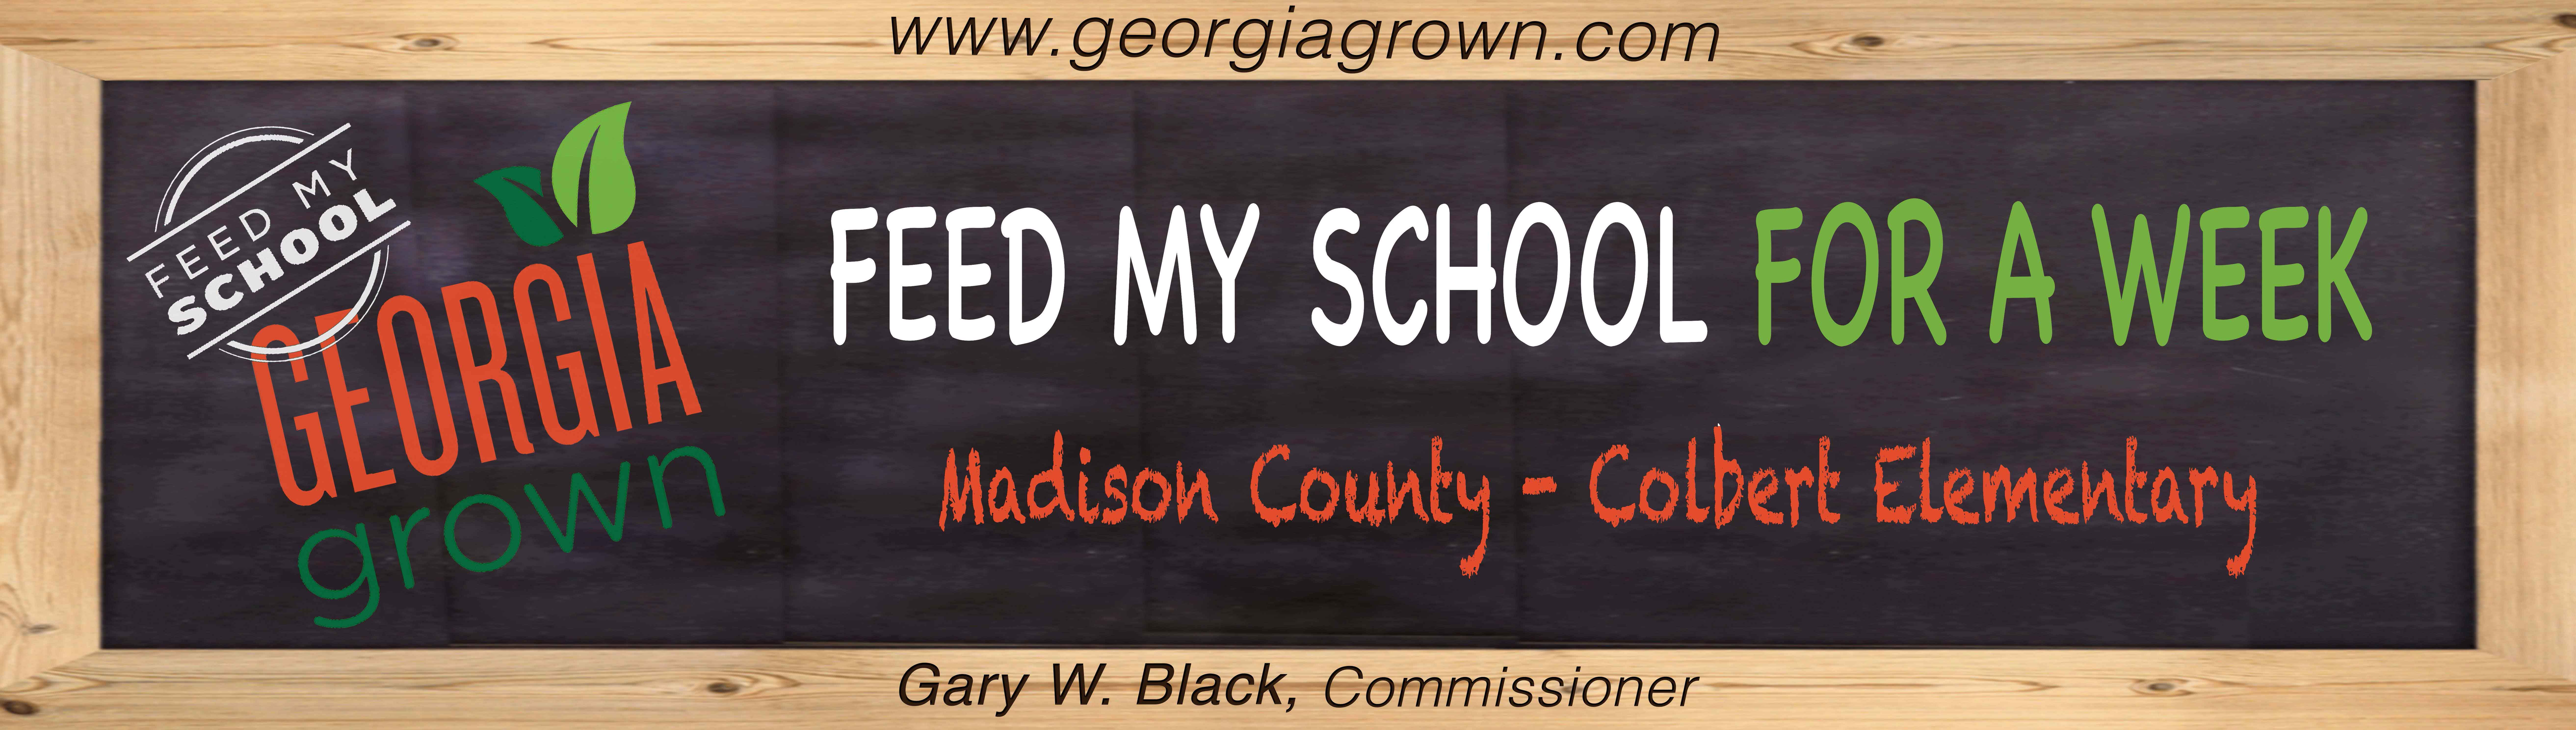 Feed My School for a Week week will be Sept. 23-27 at Colbert Elementary School